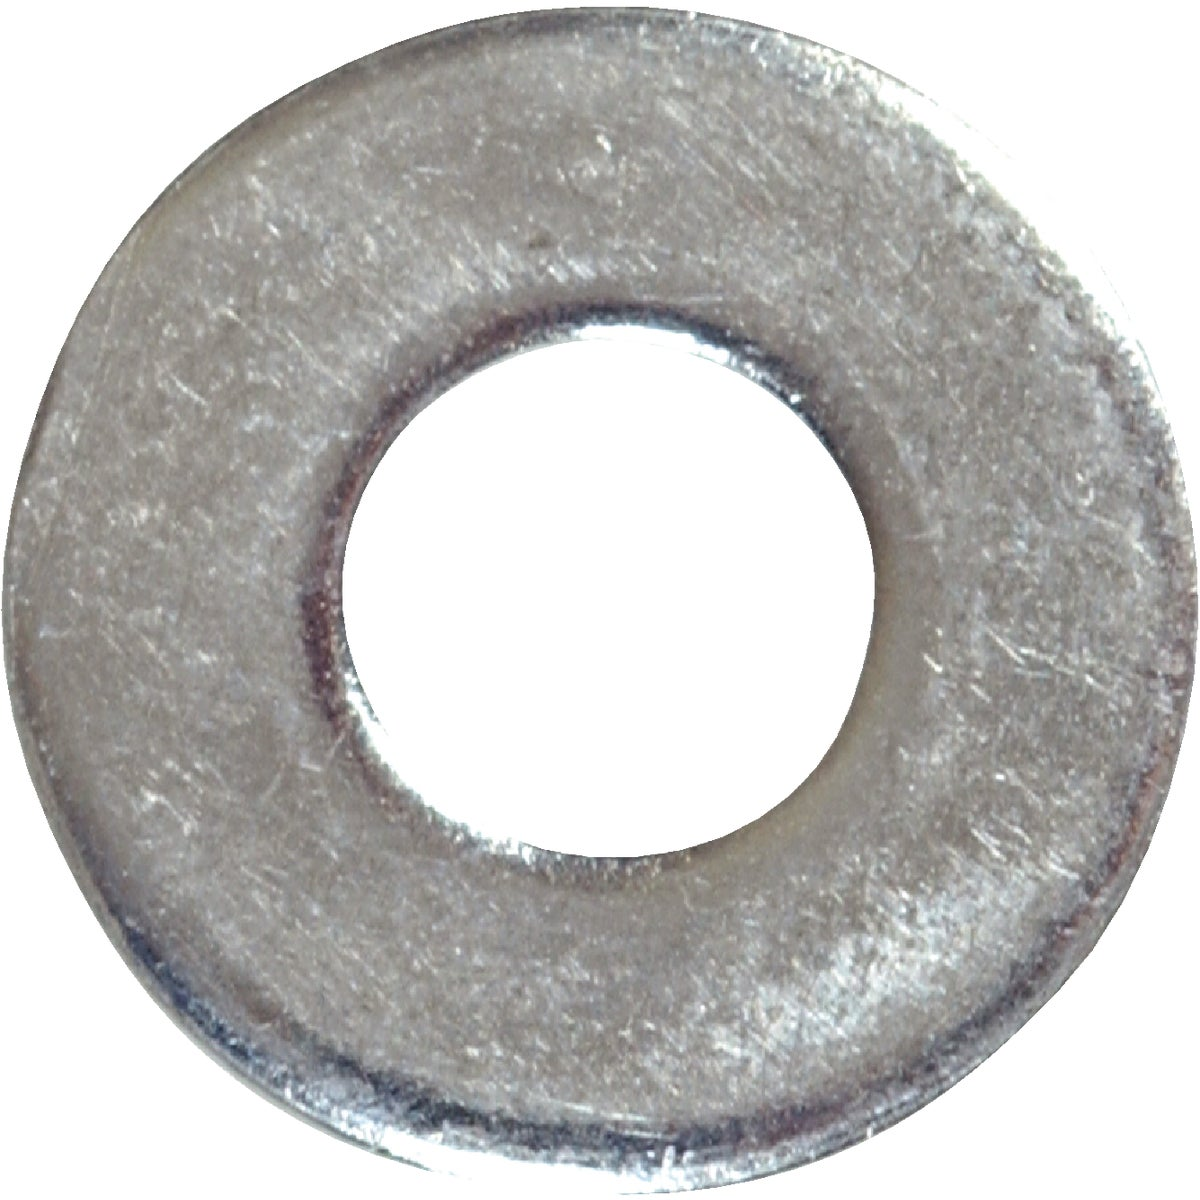 "25LB 1/4"" USS FLT WASHER - 660051 by Hillman Fastener"